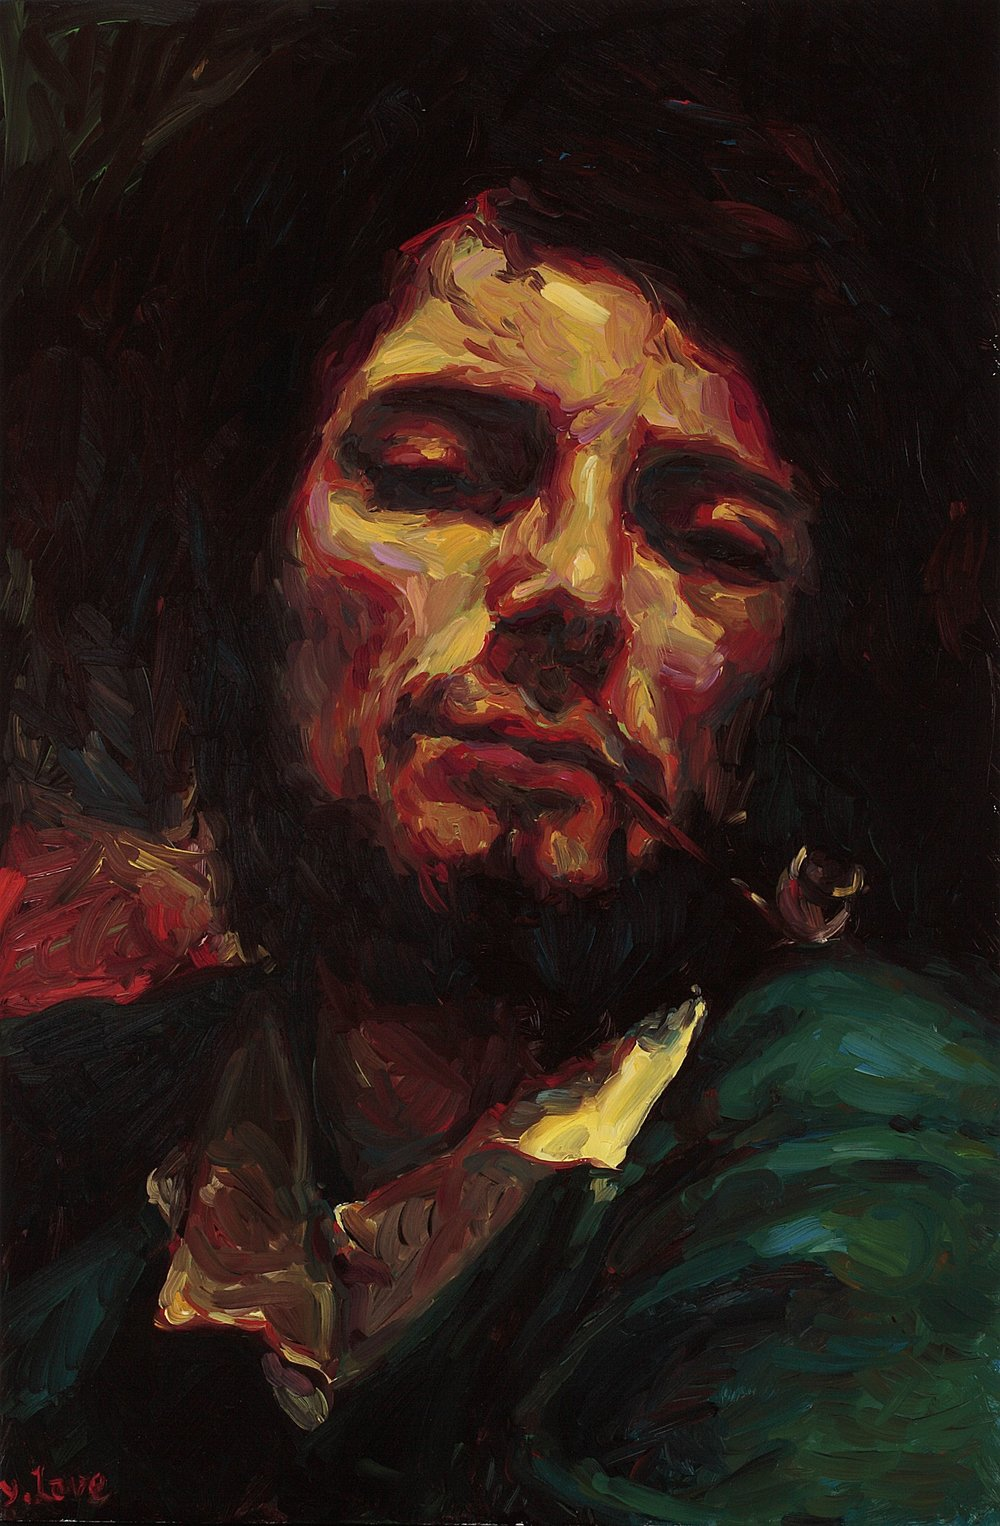 Man with a Pipe (after Courbet), oil on board, 60 x 40 cm, 2008.